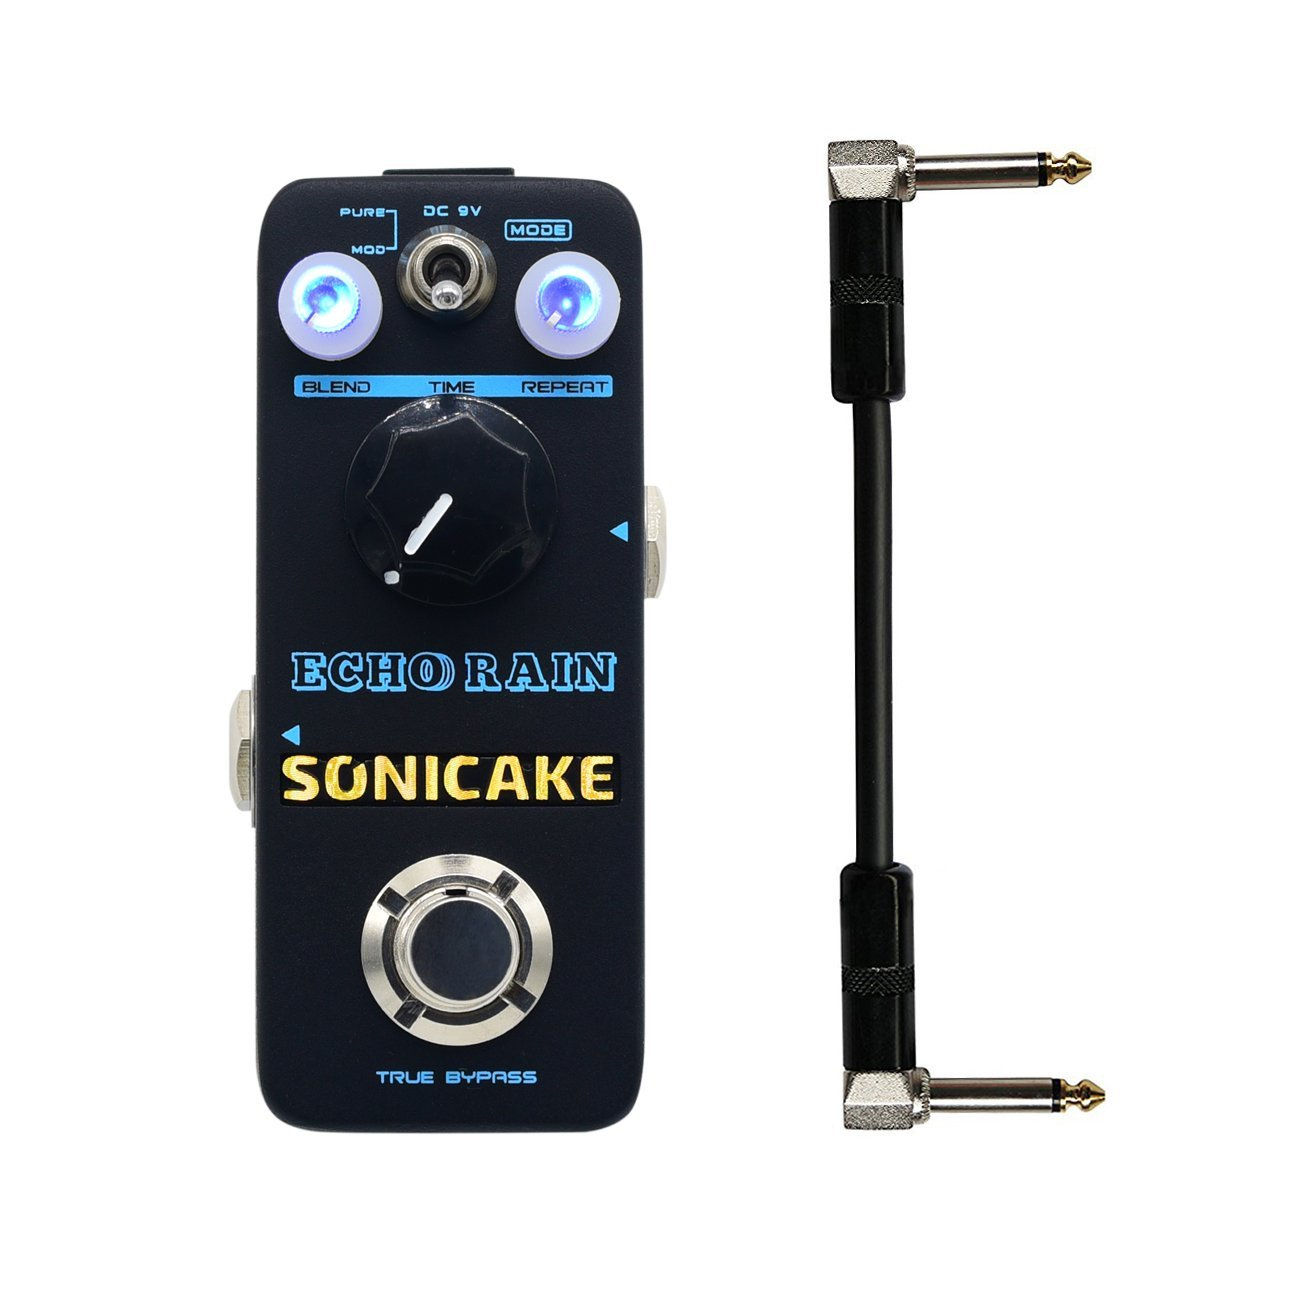 SONICAKE Echo Rain Digital Delay Effects Pedal True Analog Signal Path Clear and Warm Feedback SONICAKE1